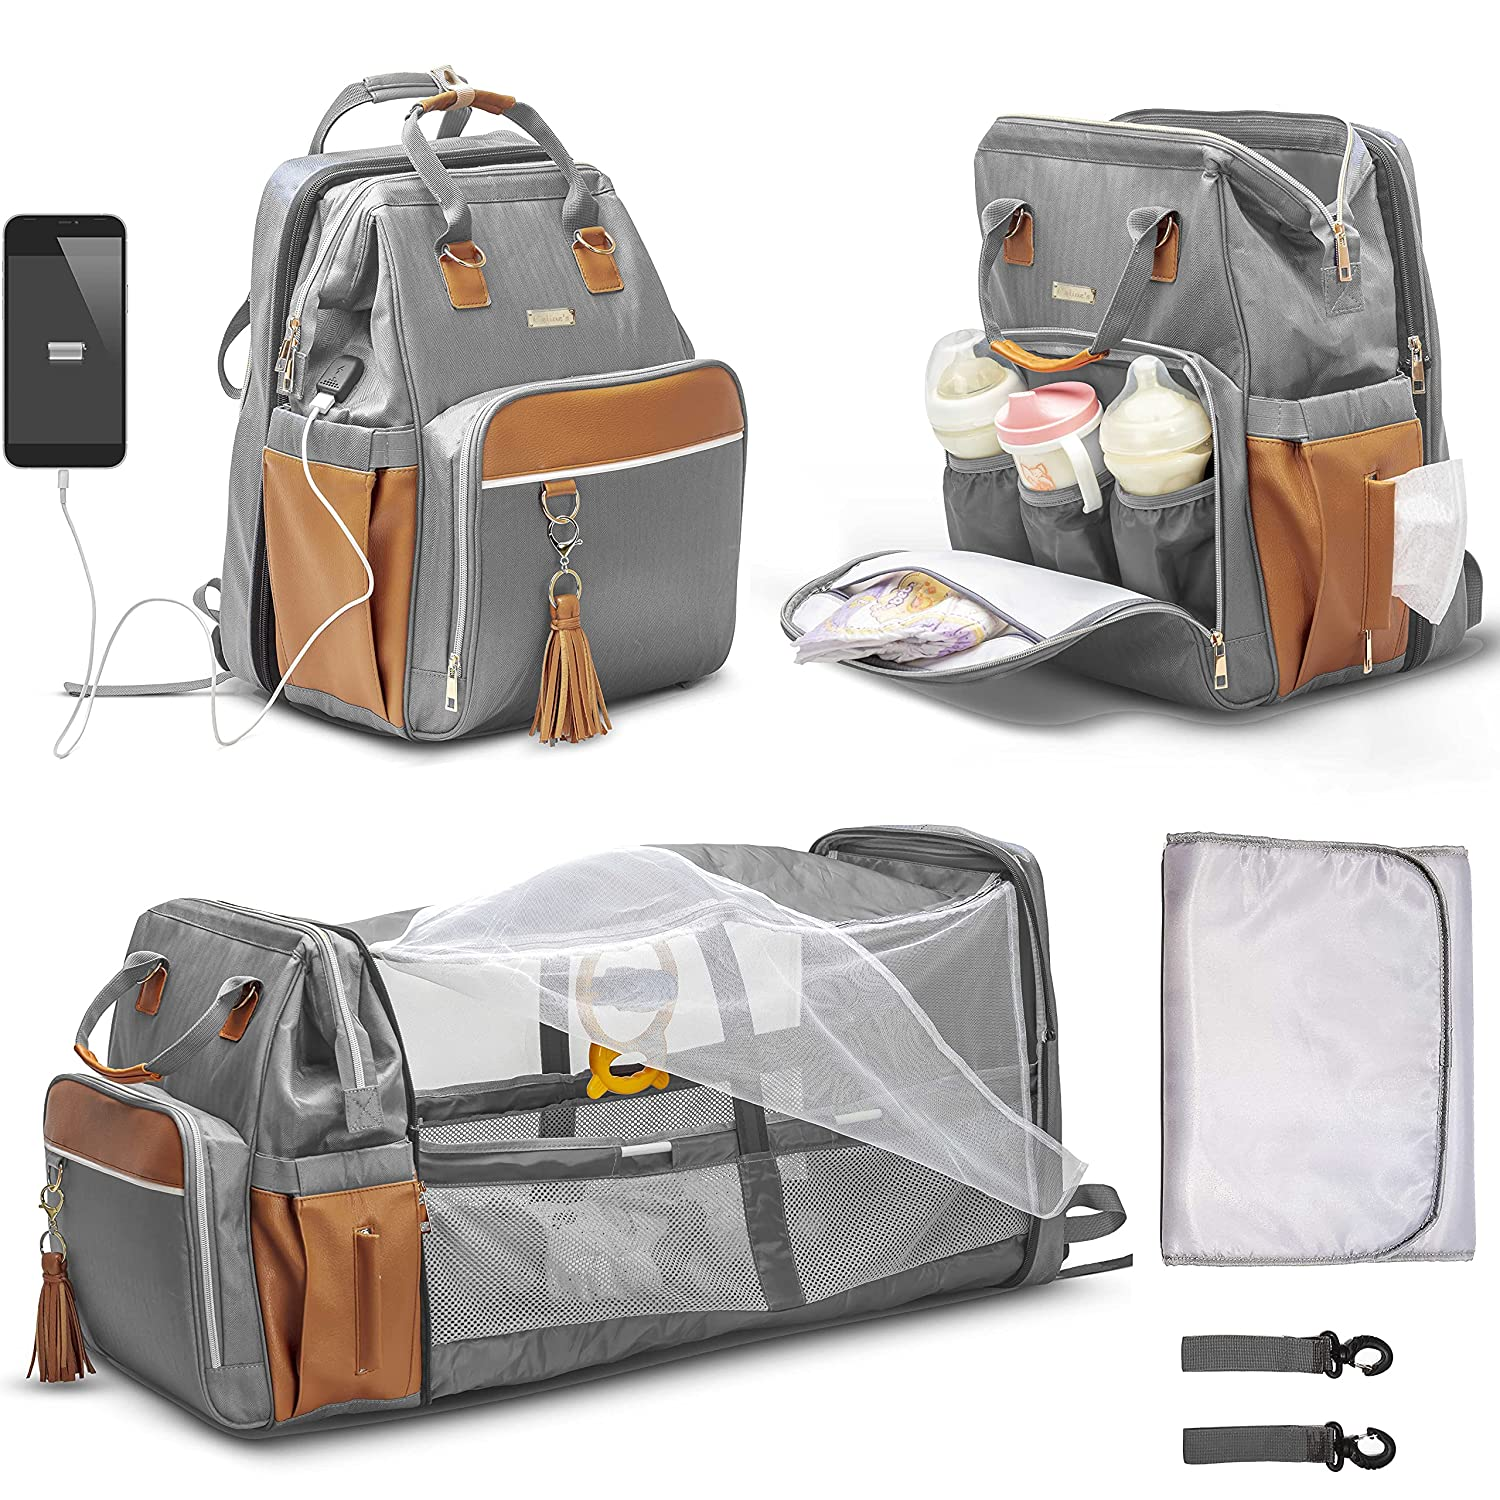 Celine's Diaper Bag Stylish Premium Quality Waterproof Baby Bag 6 in 1 Multifunctional Baby Backpack; Folding Bassinet Crib, Mosquito Net, Changing Pad,Insulated Pockets,USB Port,Diaper Pocket,(Grey)